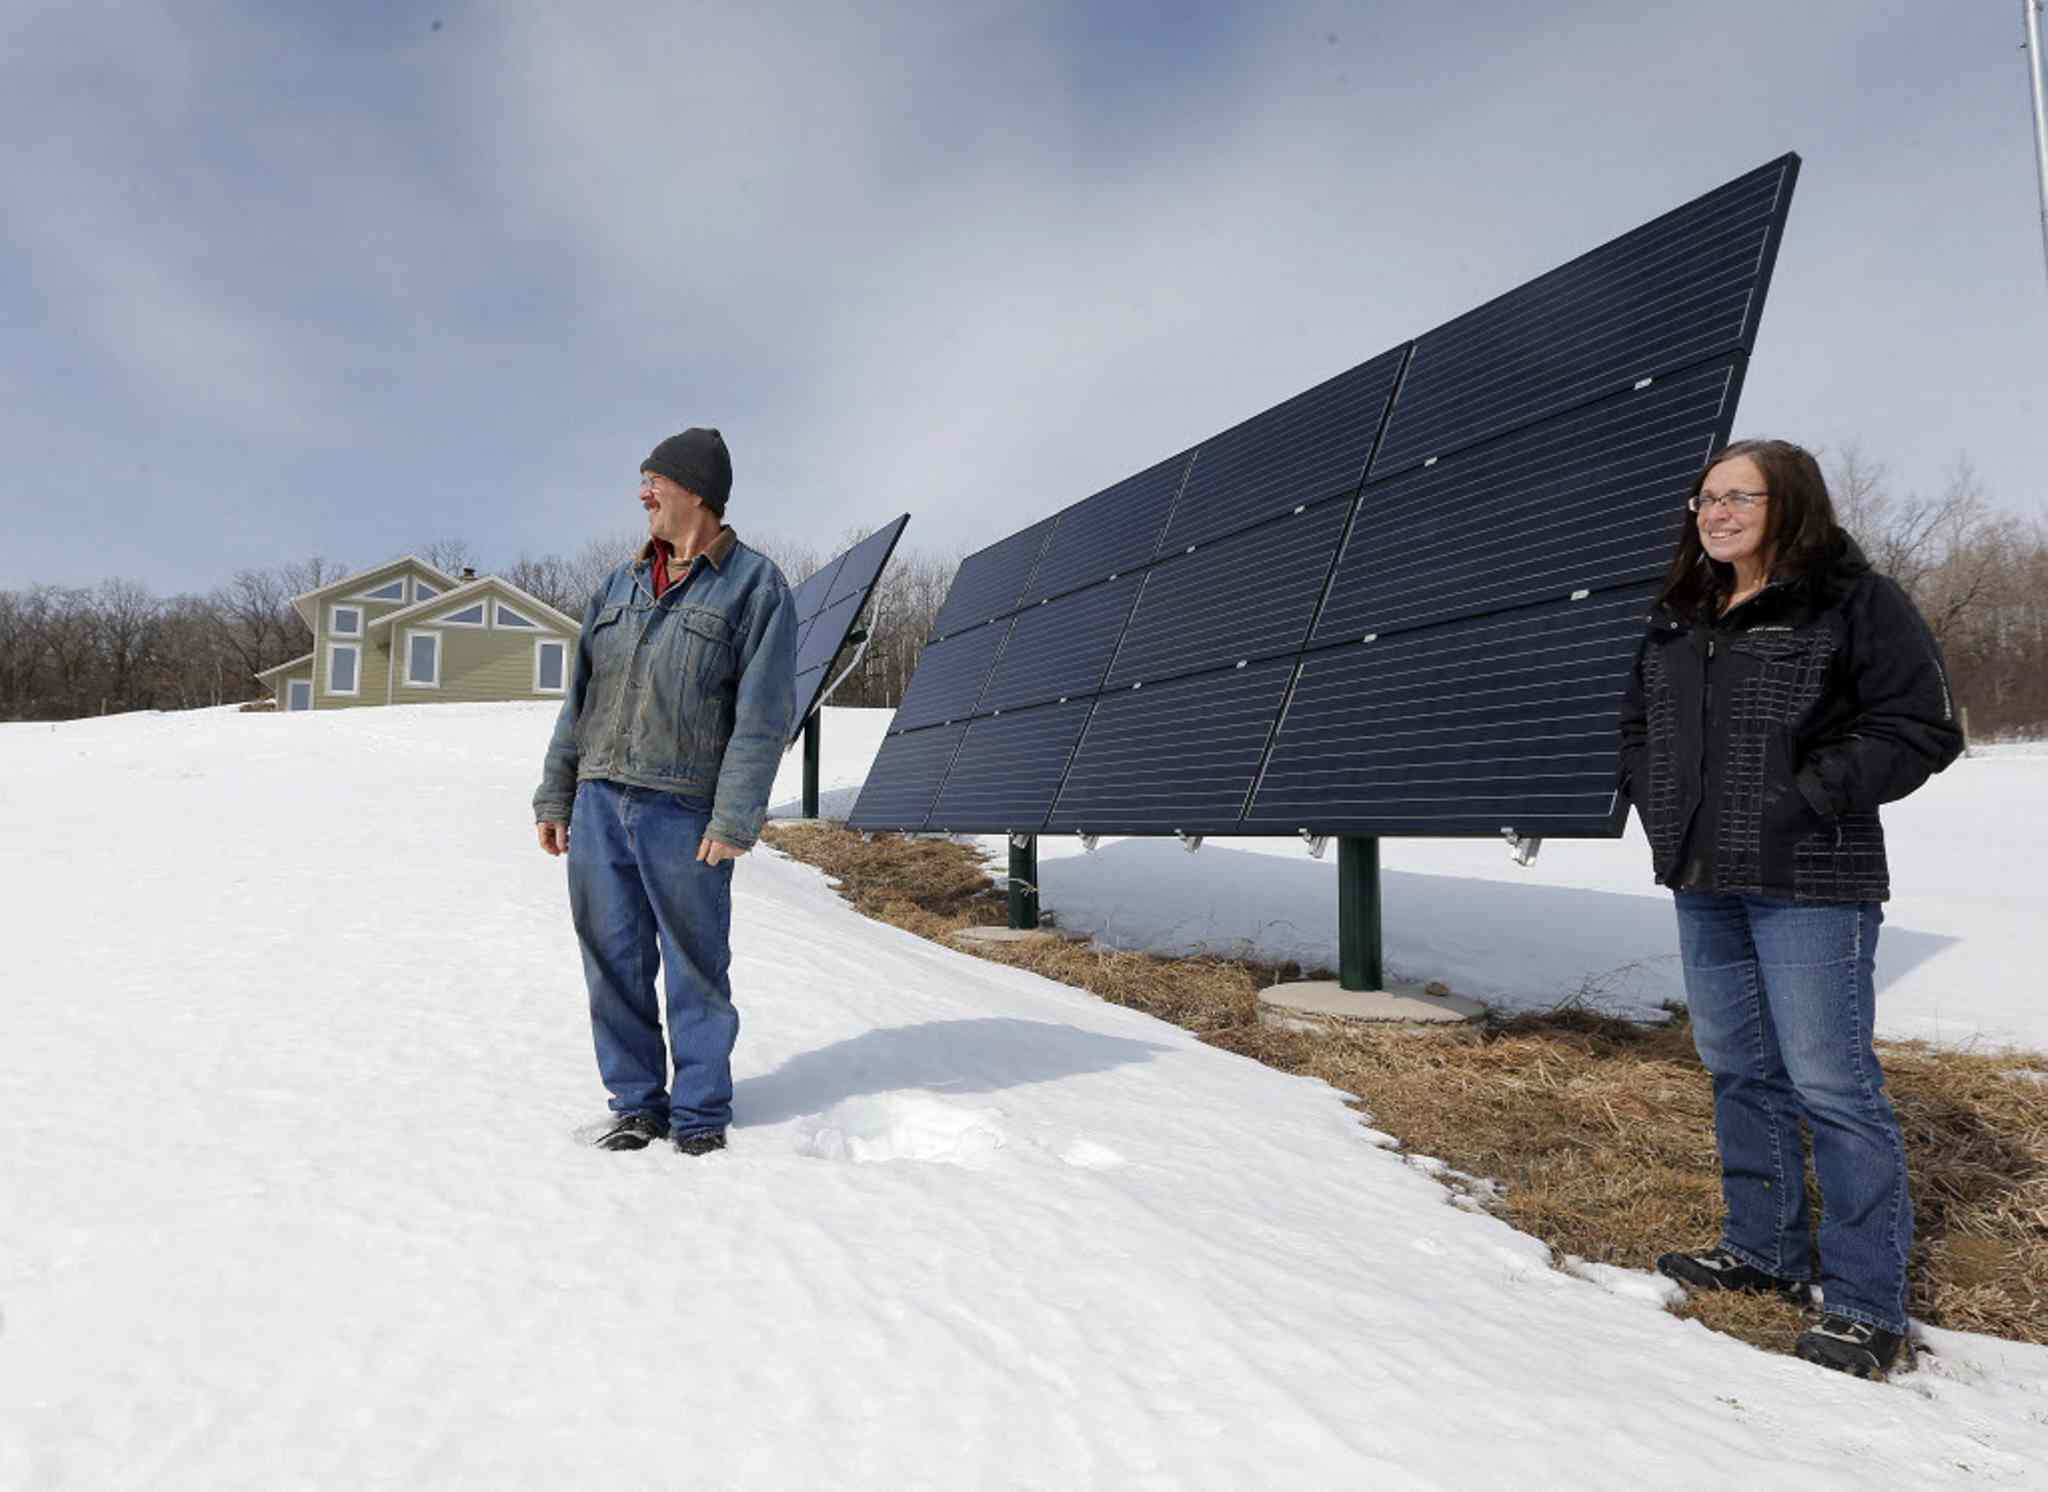 Will and Bev Eert next to the solar panels that power their home.